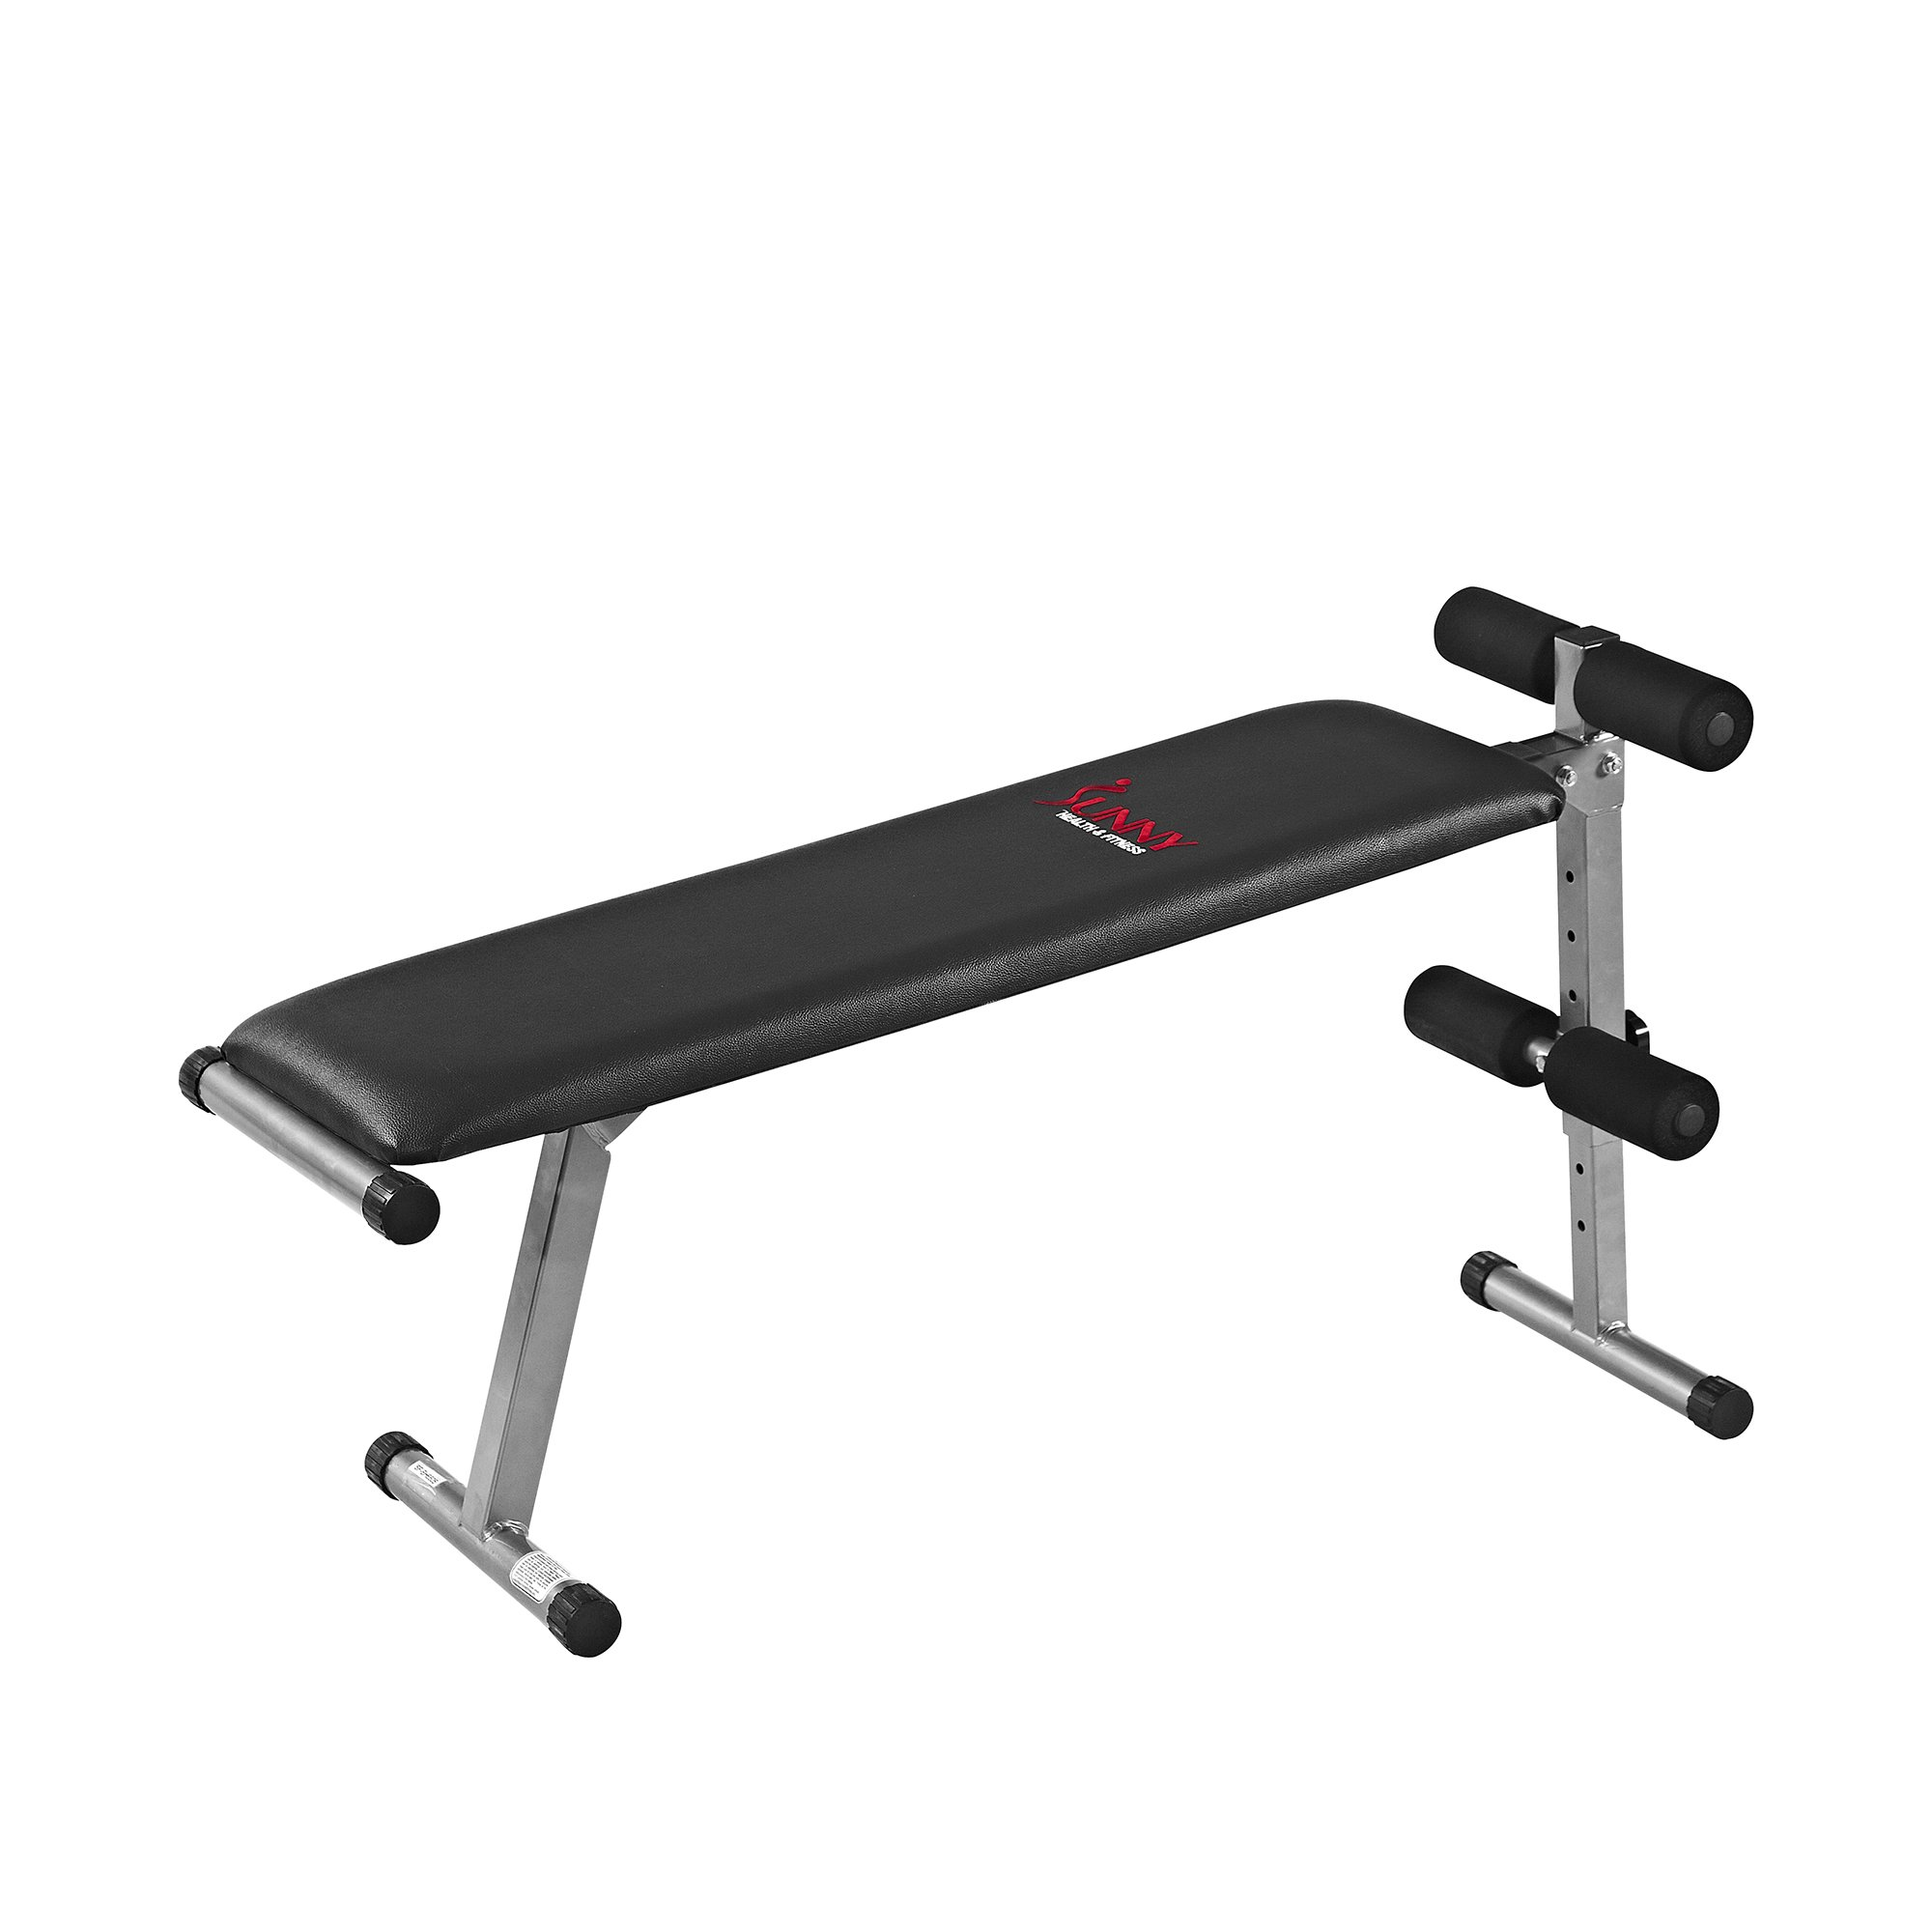 Sunny Health & Fitness SF-BH6505 2-in-1 Flat/Sit-Up Bench